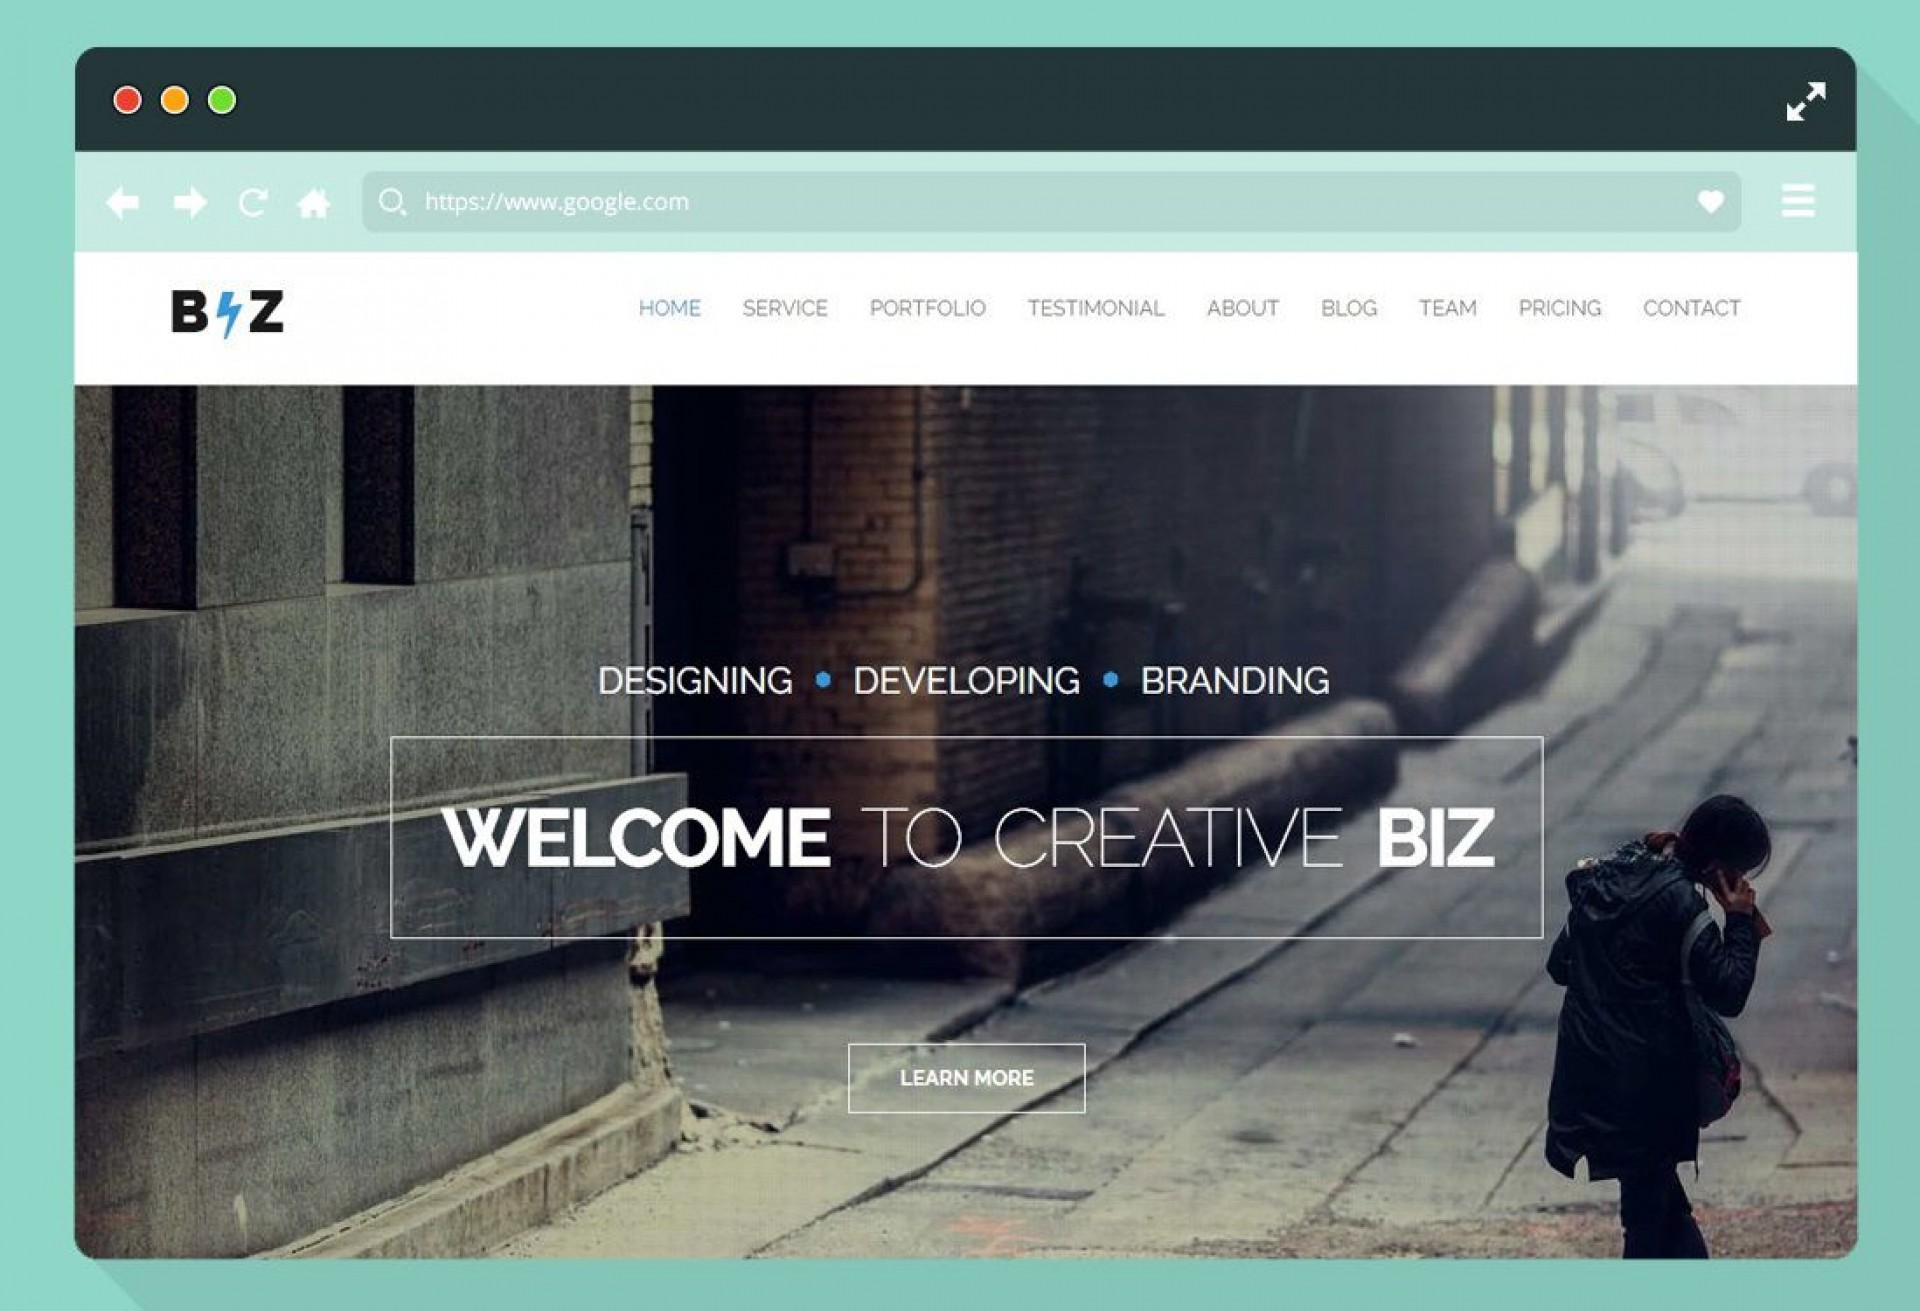 008 Impressive Creative One Page Website Template Free Download Image 1920